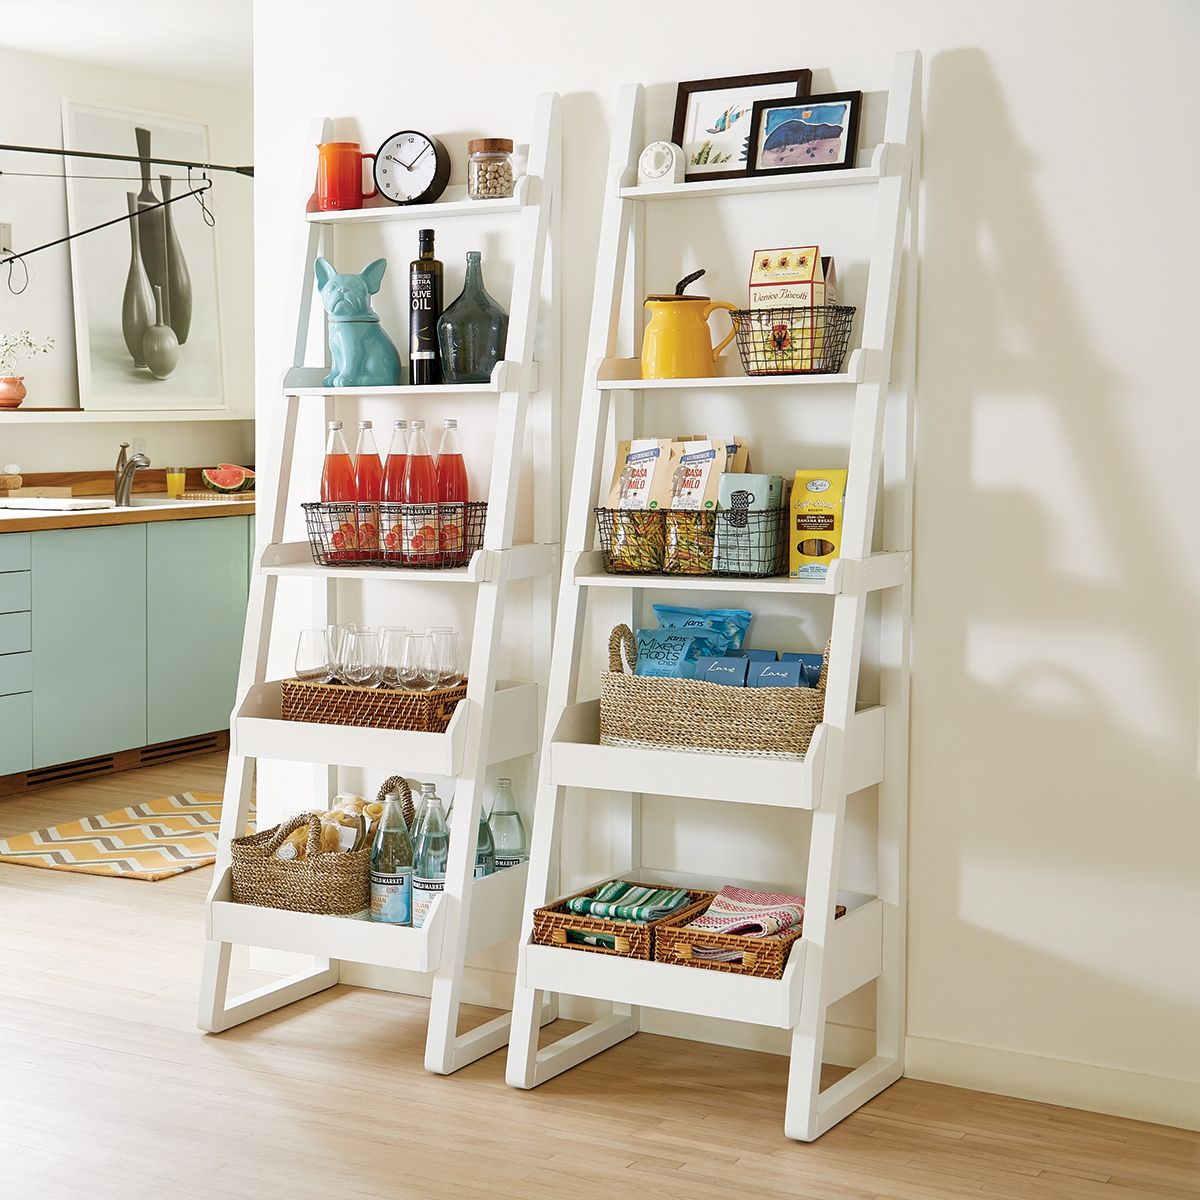 bookshelves and free standing shelving are a wonderful addition to a rh pinterest com small free standing kitchen shelves kitchen free standing shelving